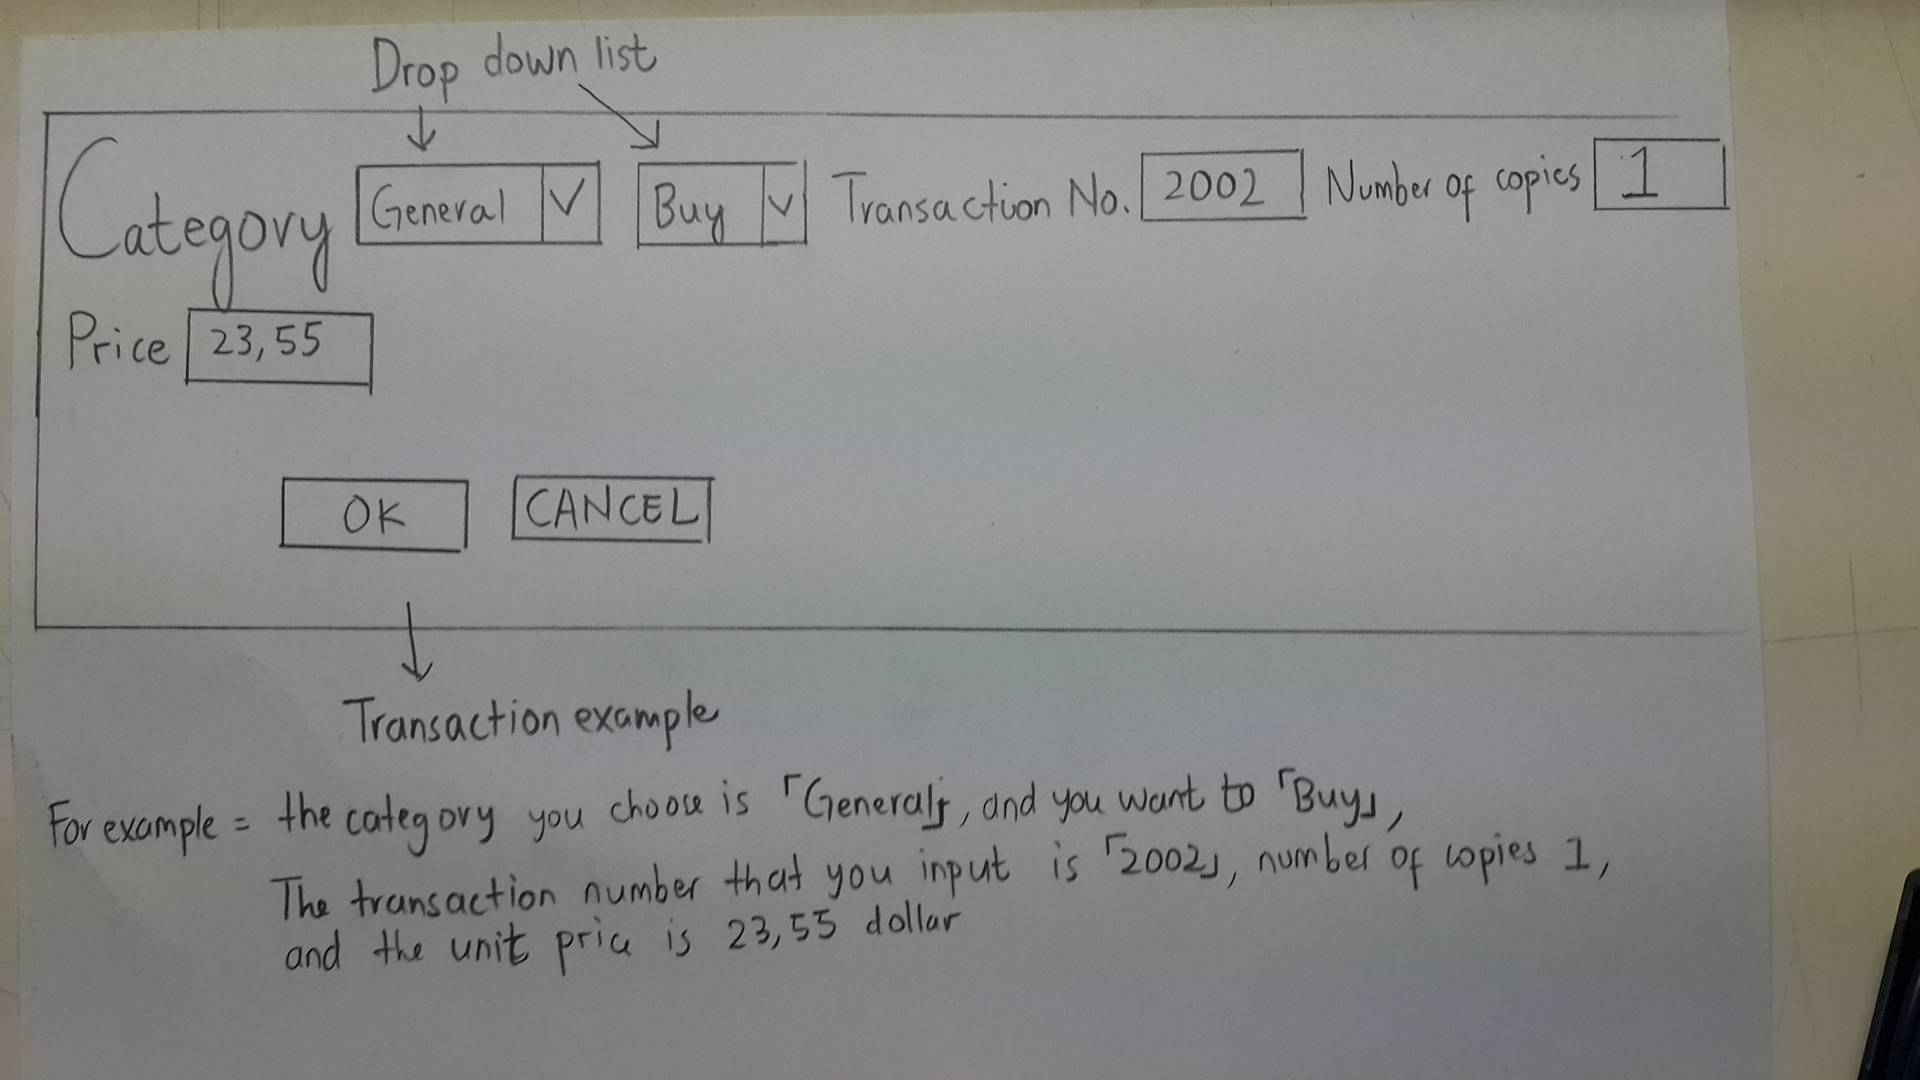 Solved Draw The Class Diagram And Sequence With T How To Transaction Example Drop Down List Categovy Lgeu Rice 23 55 Transacion No 2002 N Opis Ok